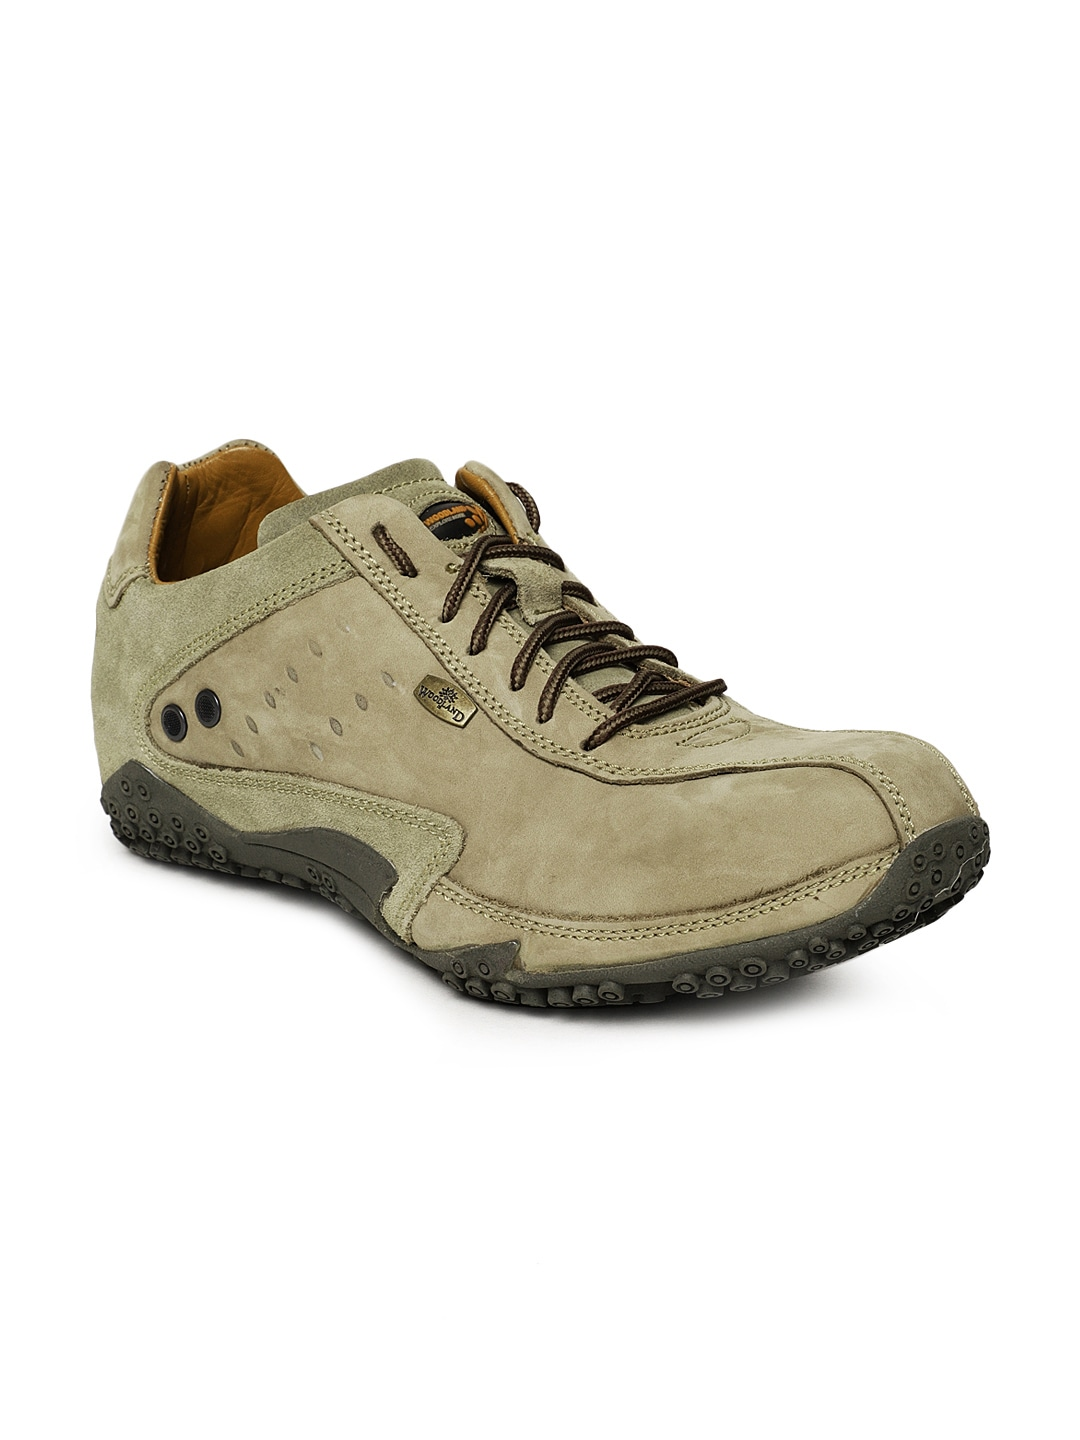 59eb21aecf44 Woodland Shoes - Buy Genuine Woodland Shoes Online At Best Price - Myntra